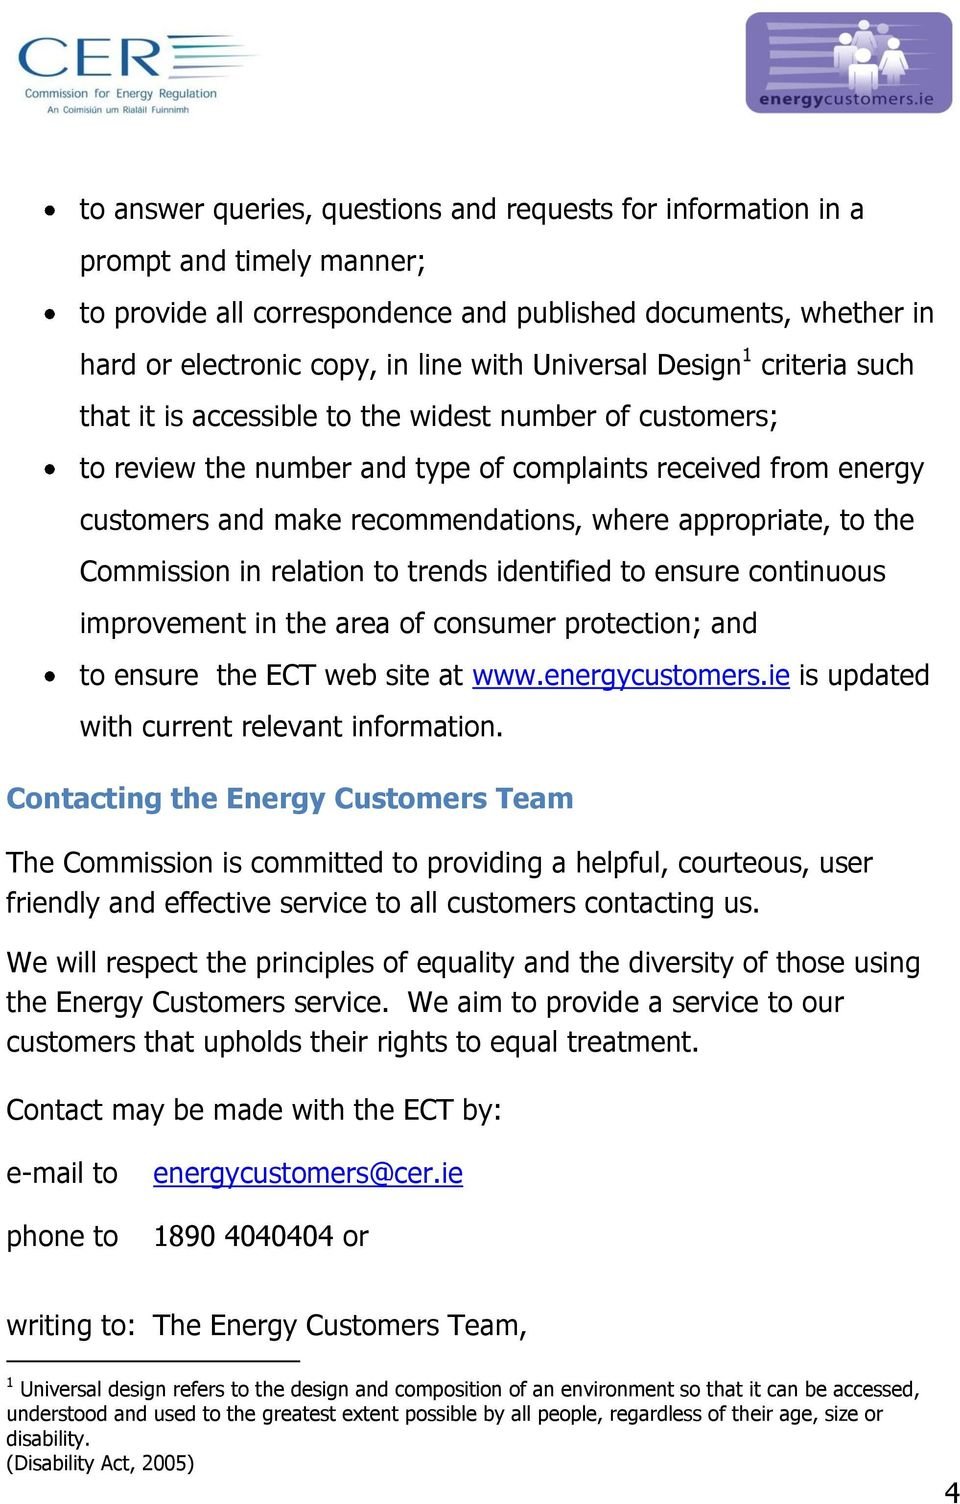 appropriate, to the Commission in relation to trends identified to ensure continuous improvement in the area of consumer protection; and to ensure the ECT web site at www.energycustomers.